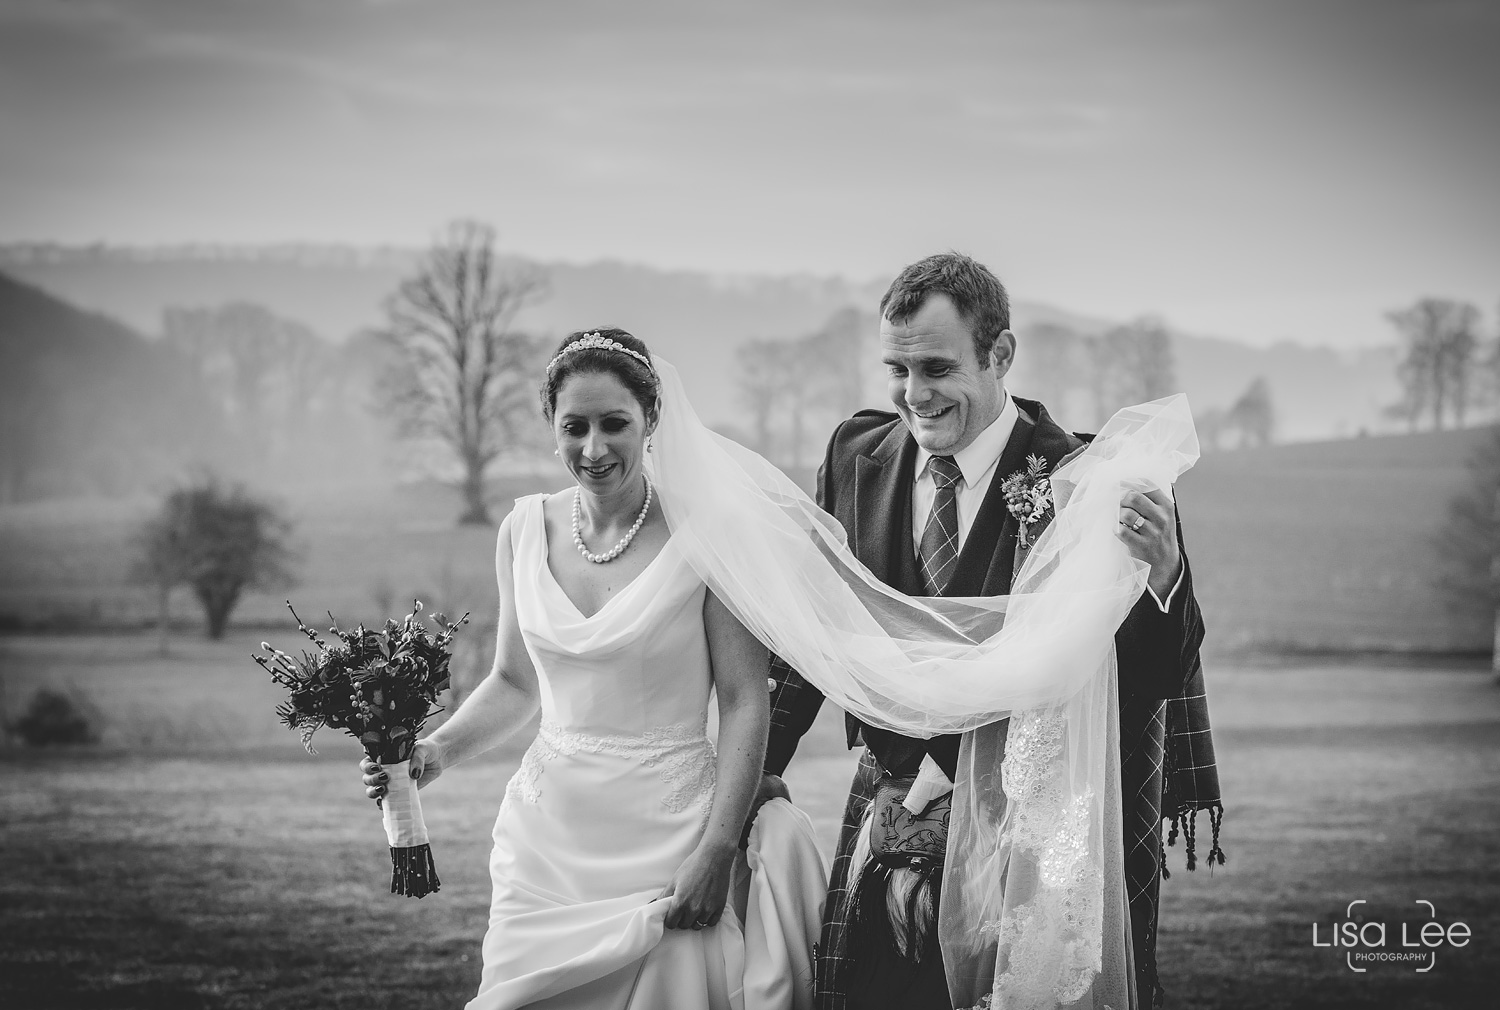 wedding-photography-milton-abbey-walking-3.jpg